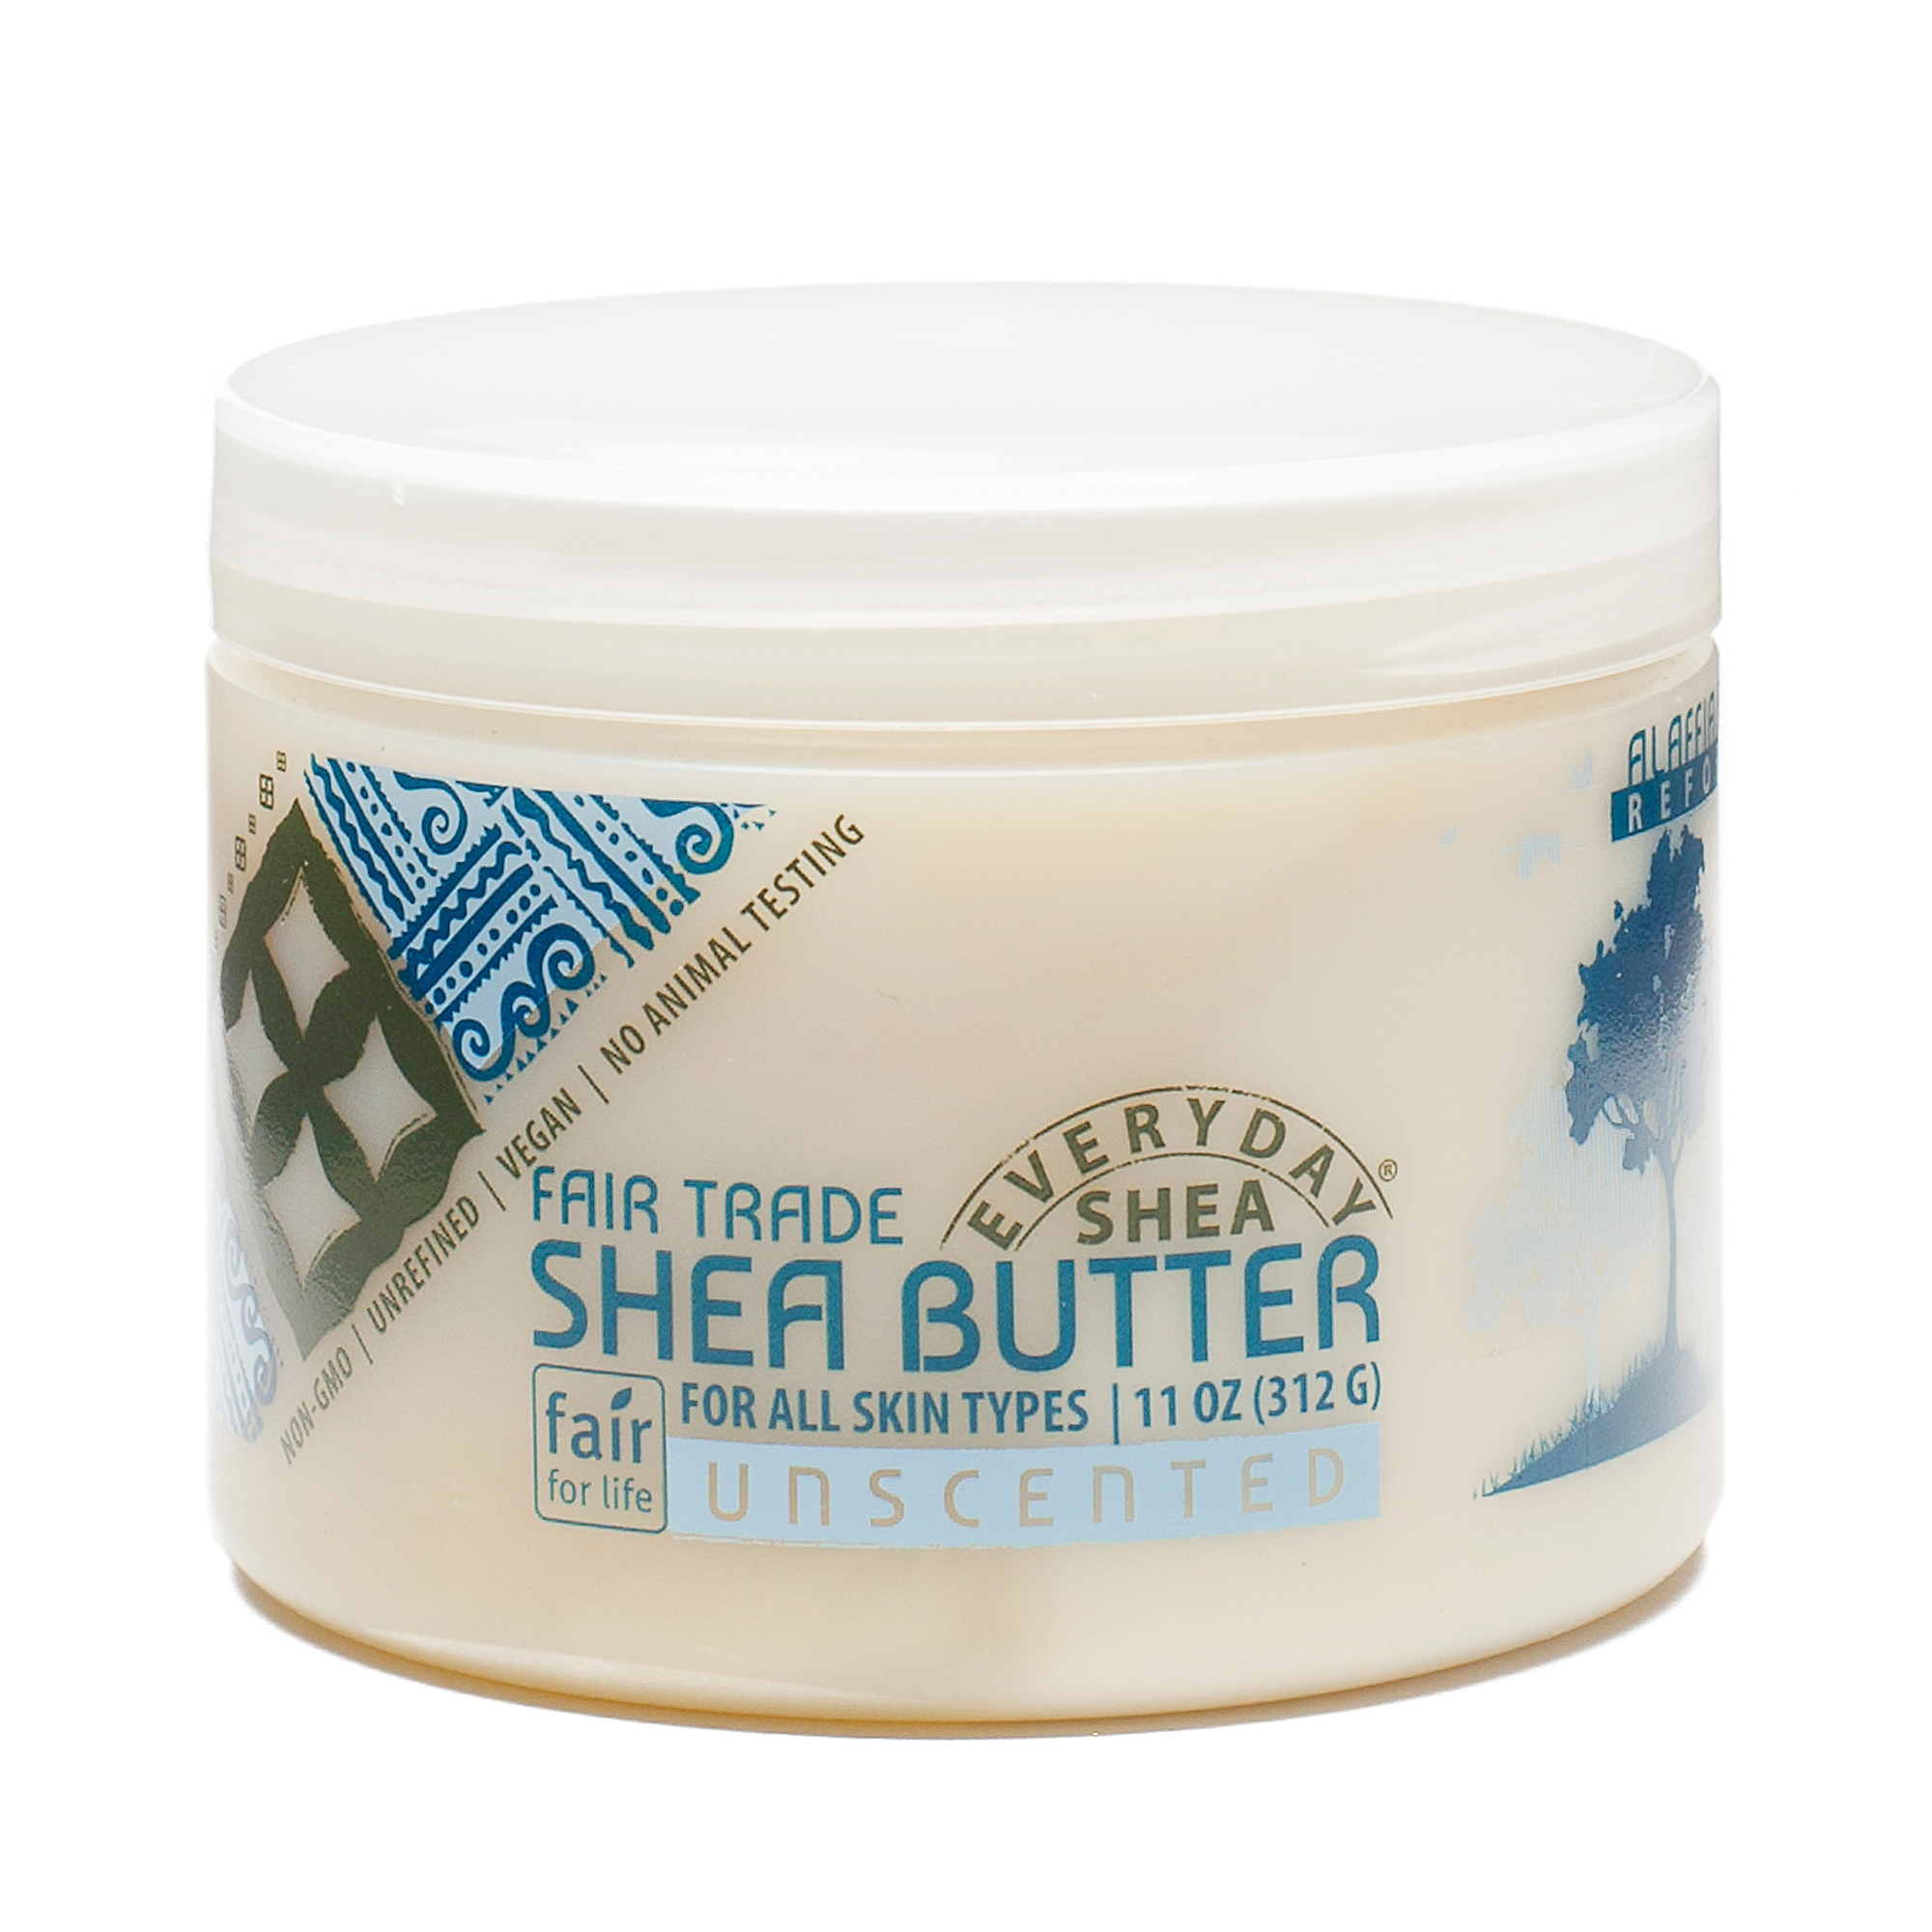 Fair Trade Shea Butter - Unscented